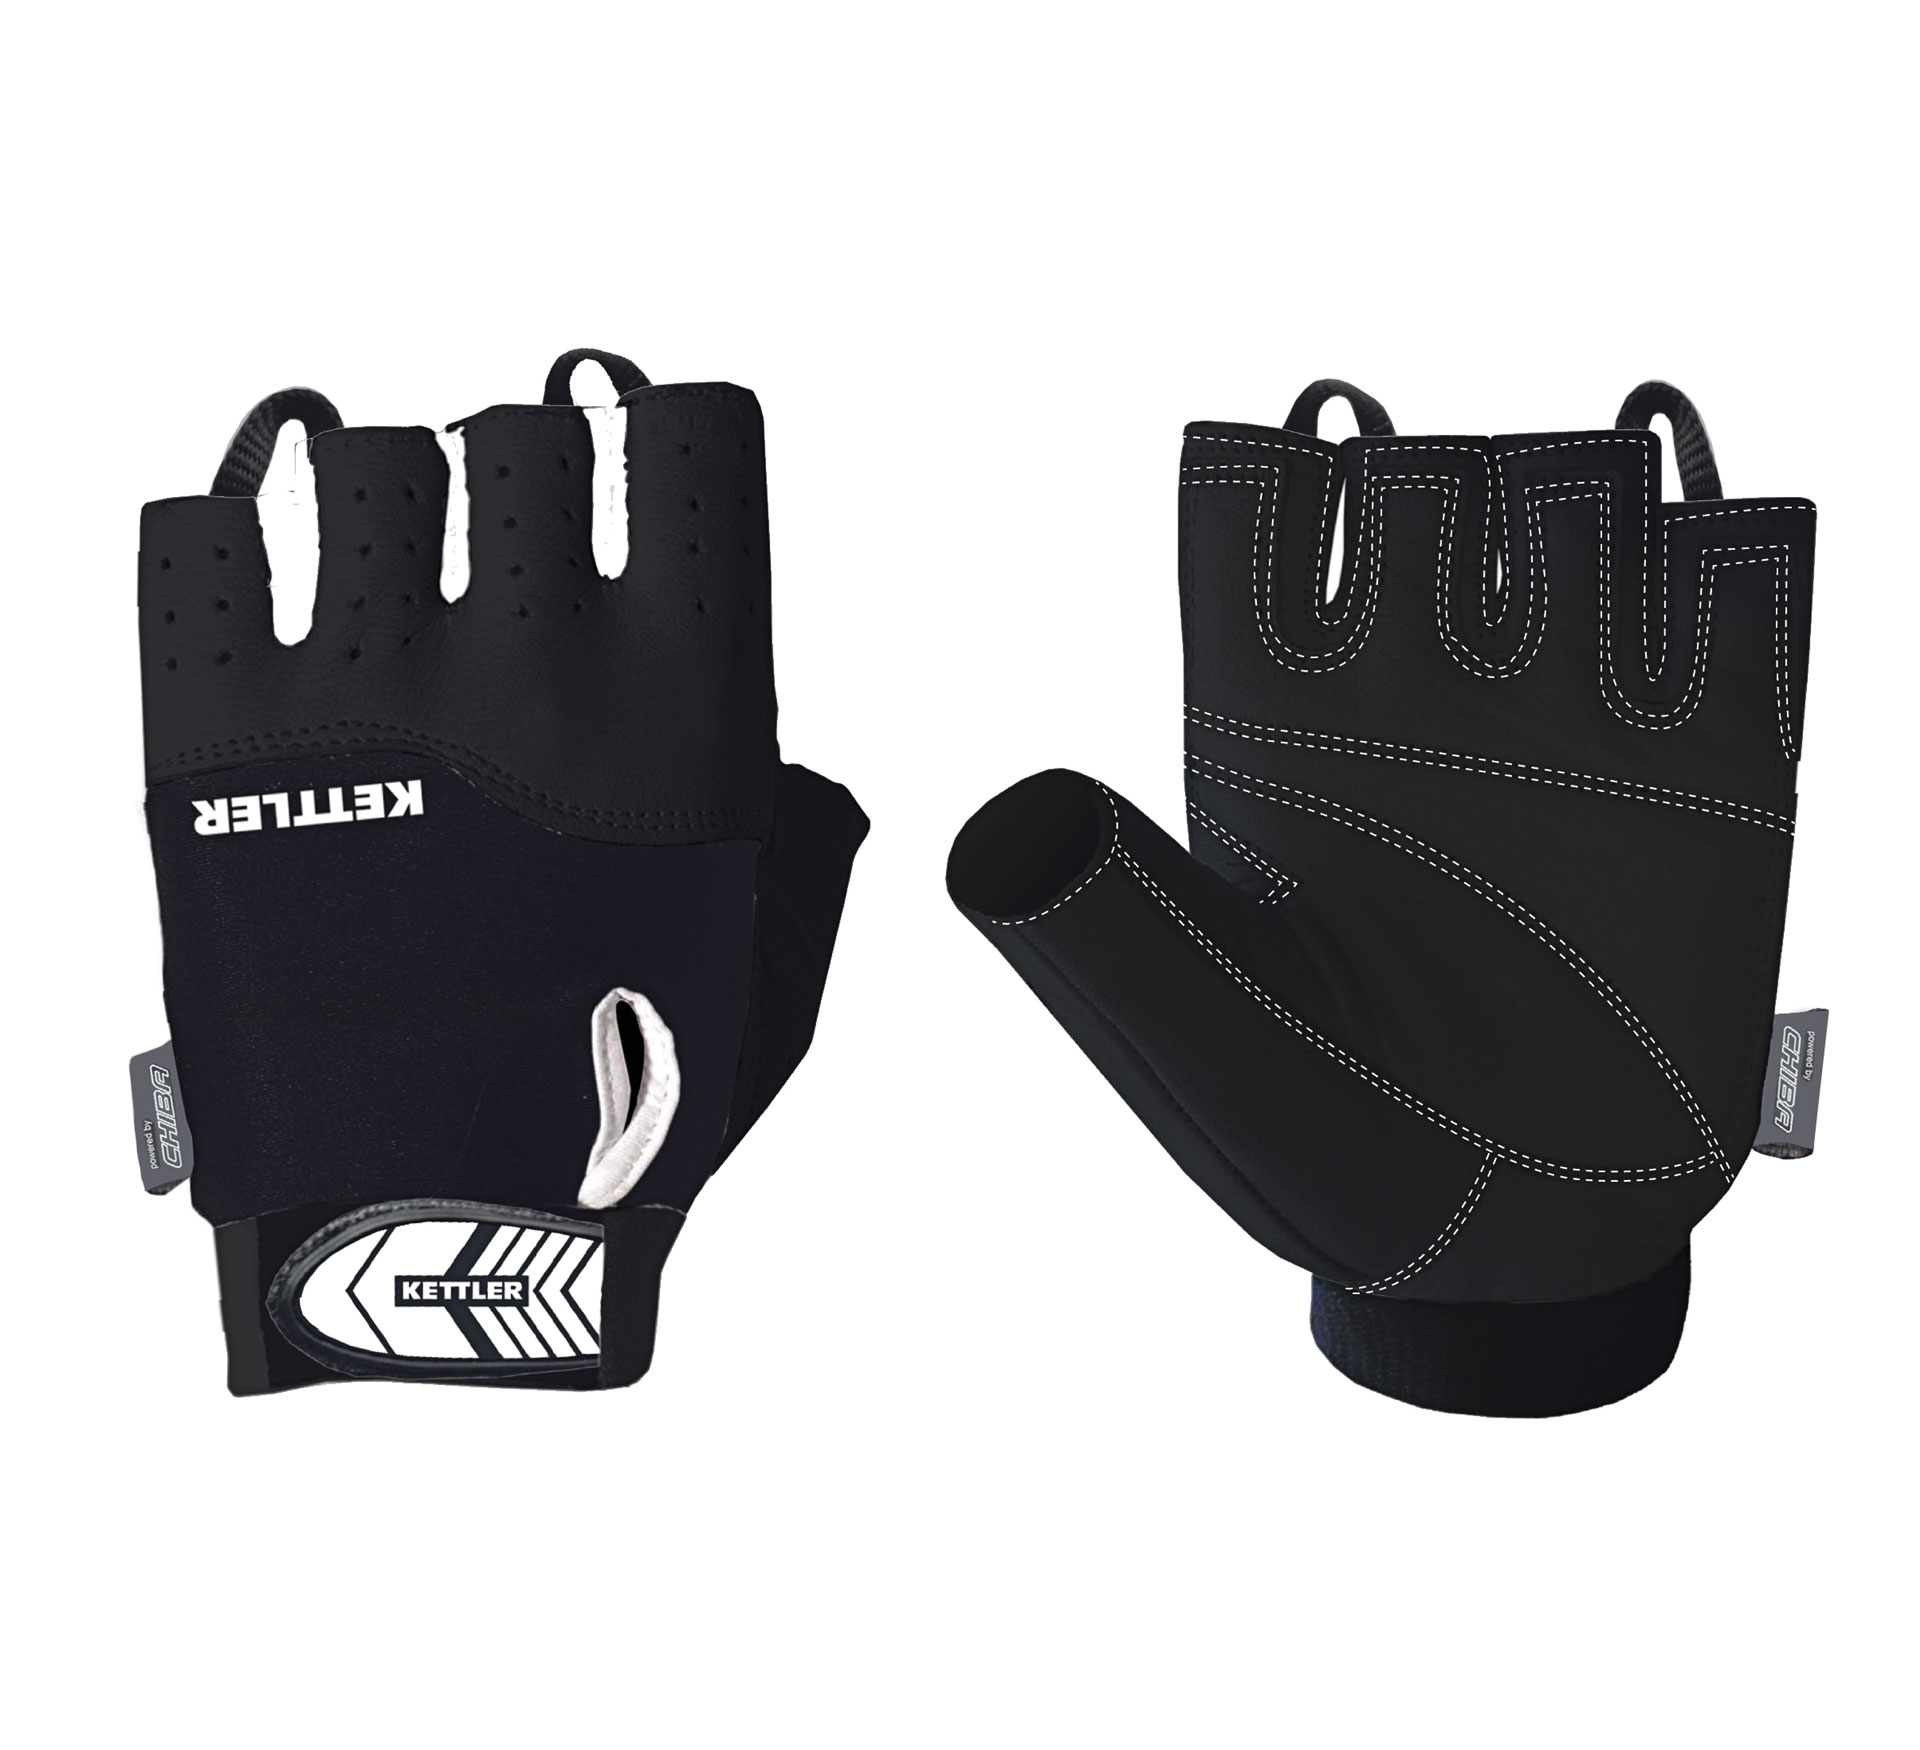 Kettler Trainings Gloves zwart - wit